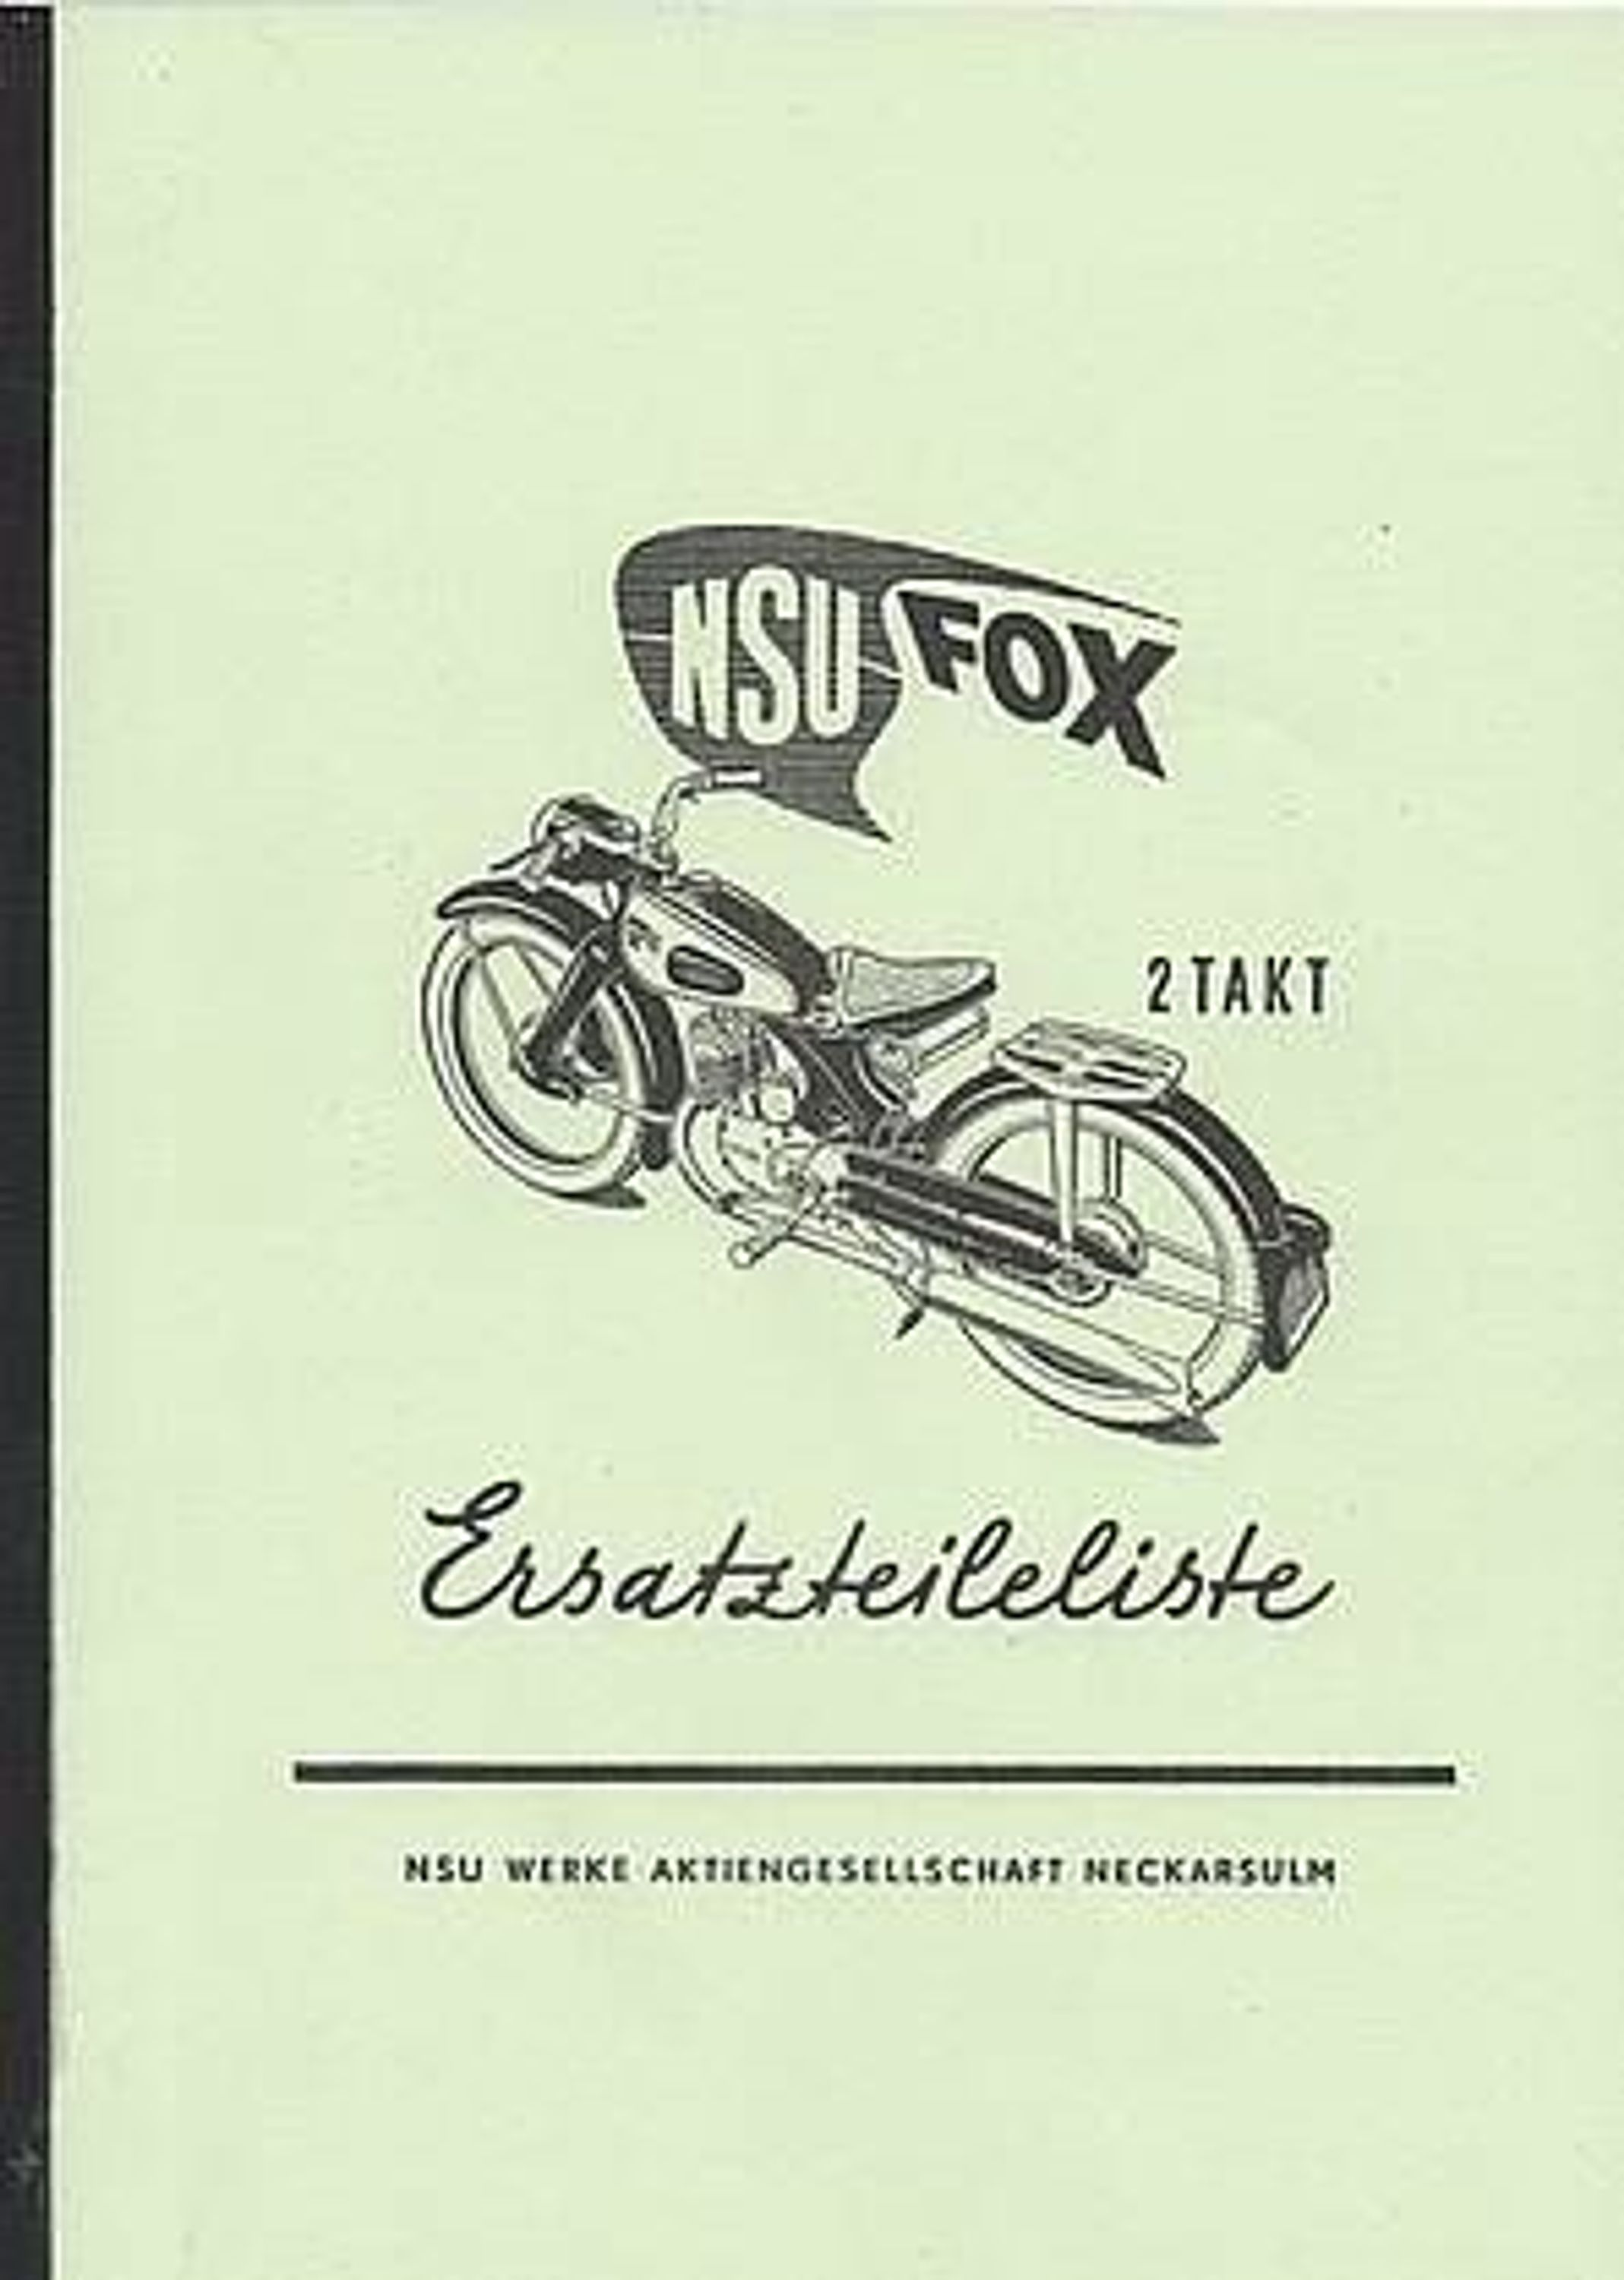 ersatzteilliste nsu fox 2 takt 125 ccm motorrad zweirad. Black Bedroom Furniture Sets. Home Design Ideas